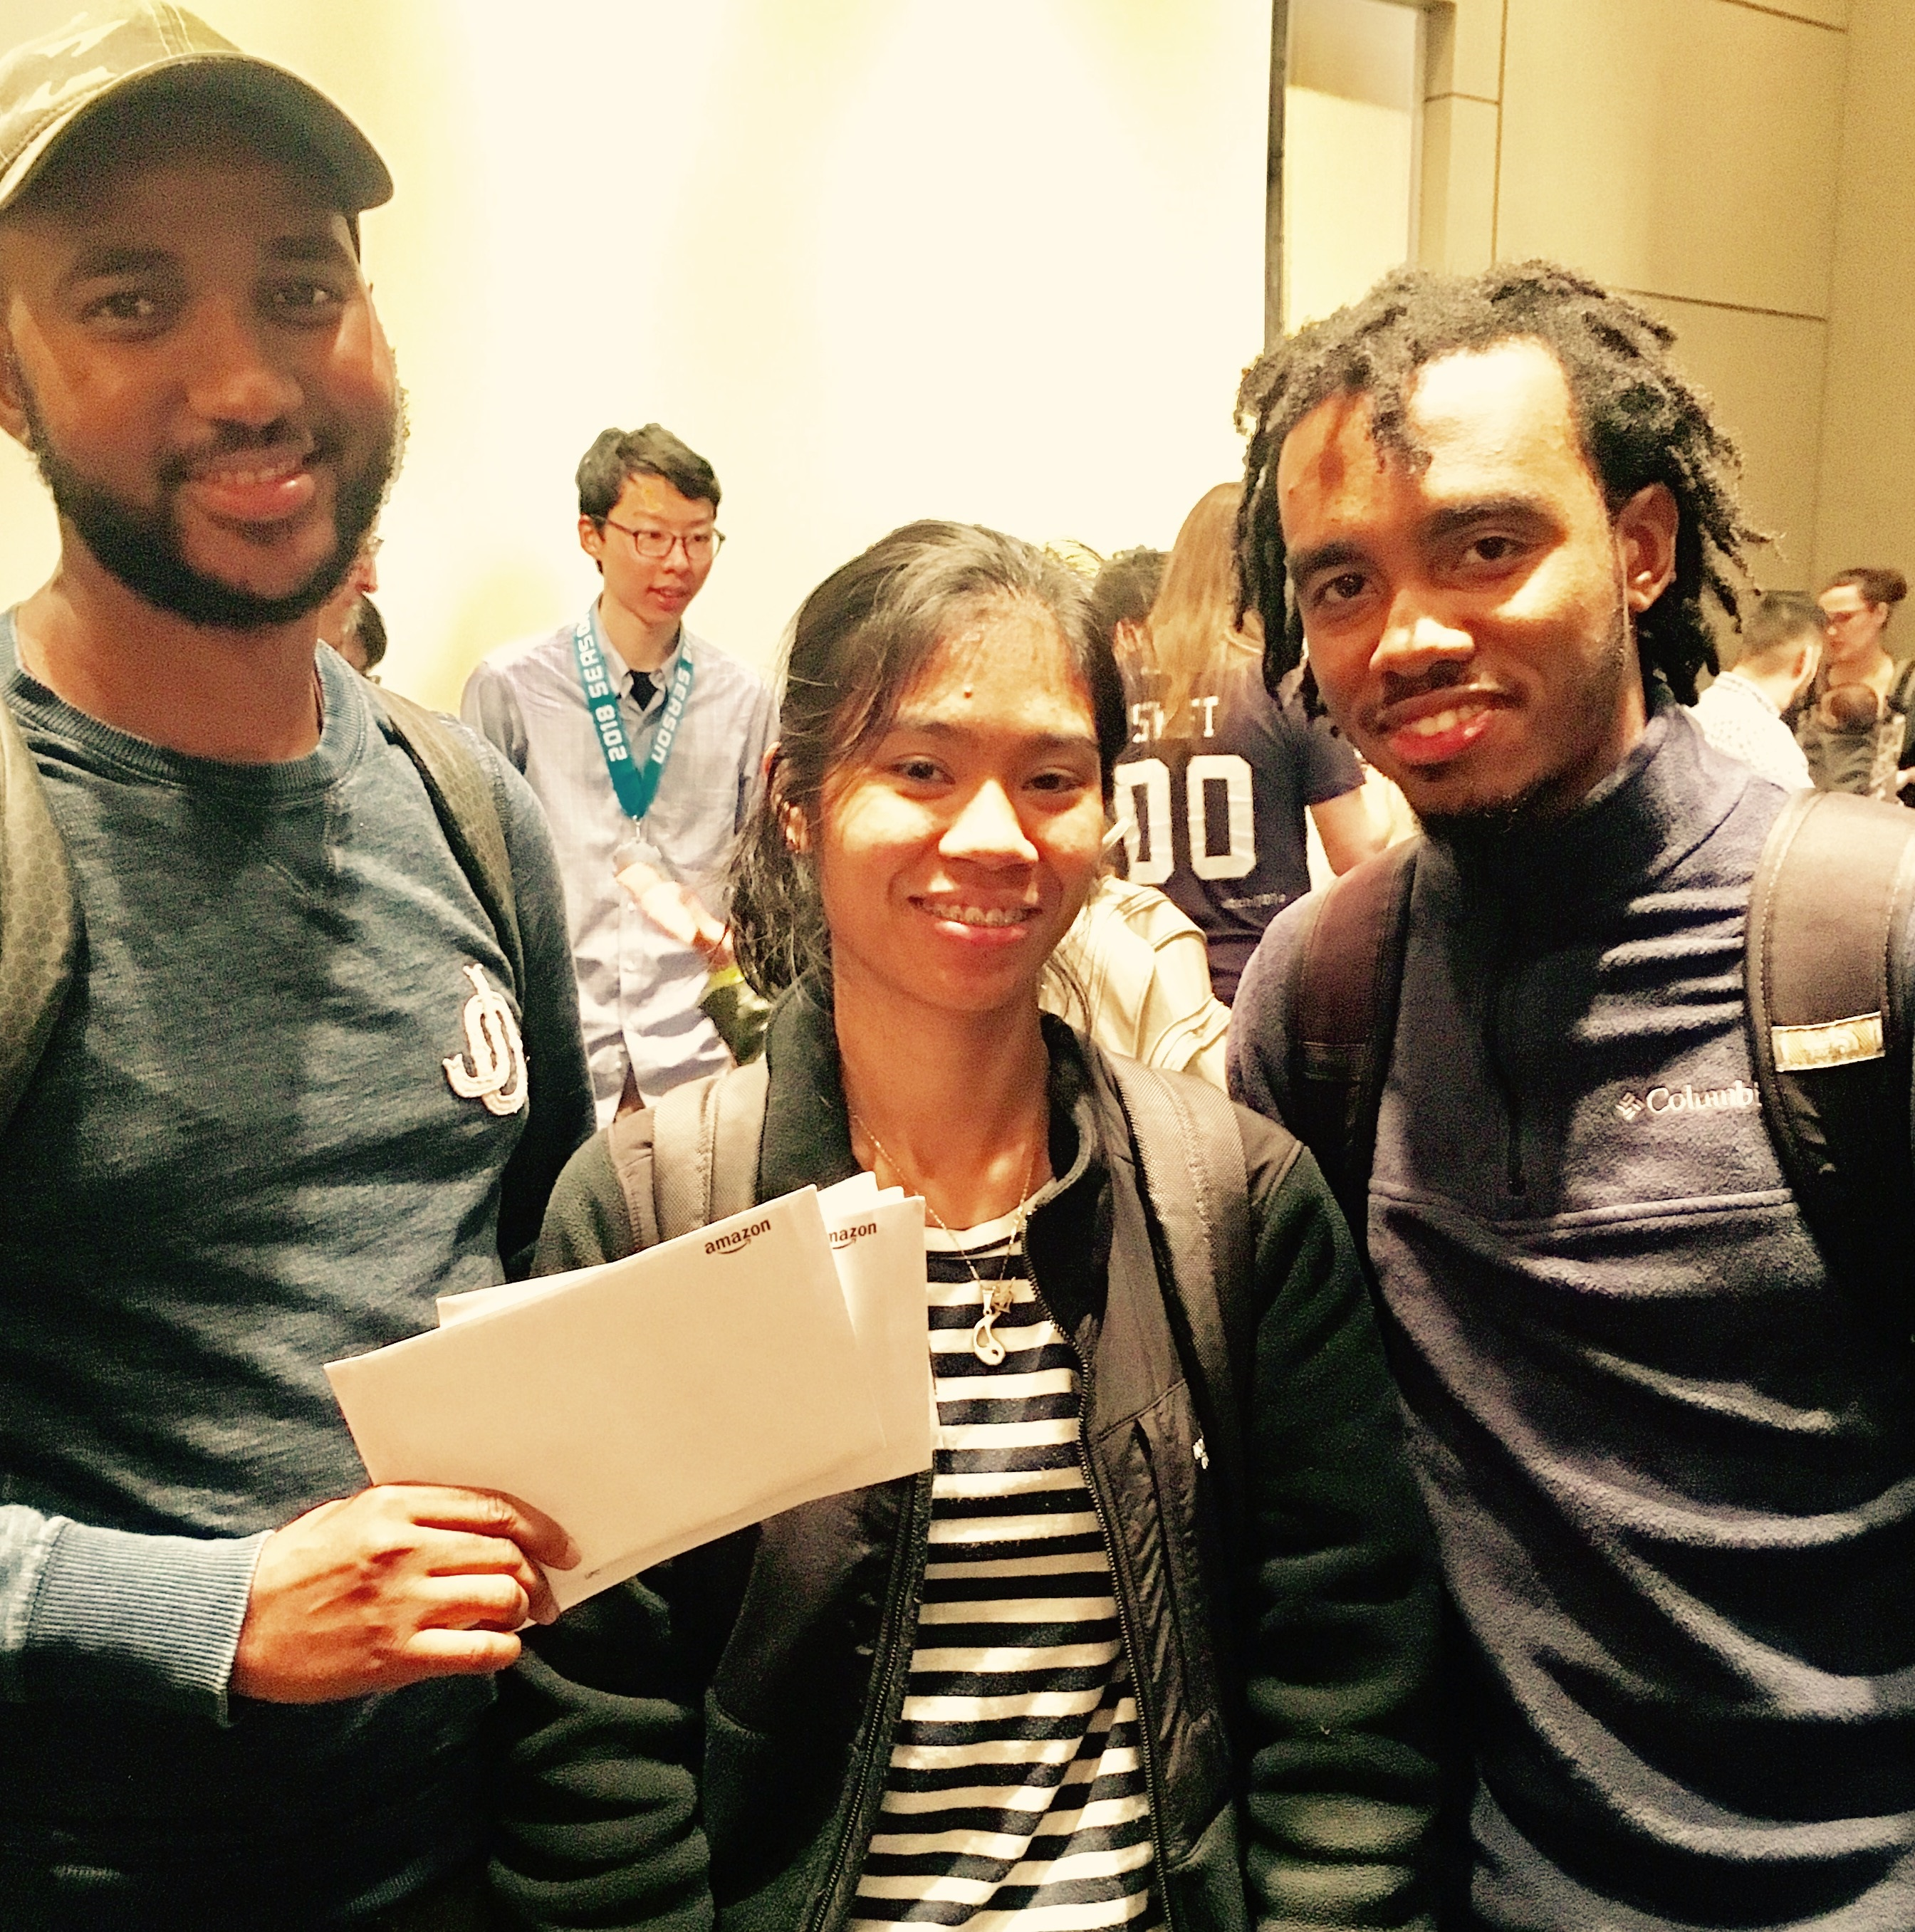 hackNY winners, left to right, Amarou Bah, Kirstyn Natavio and Dwayne Johnson